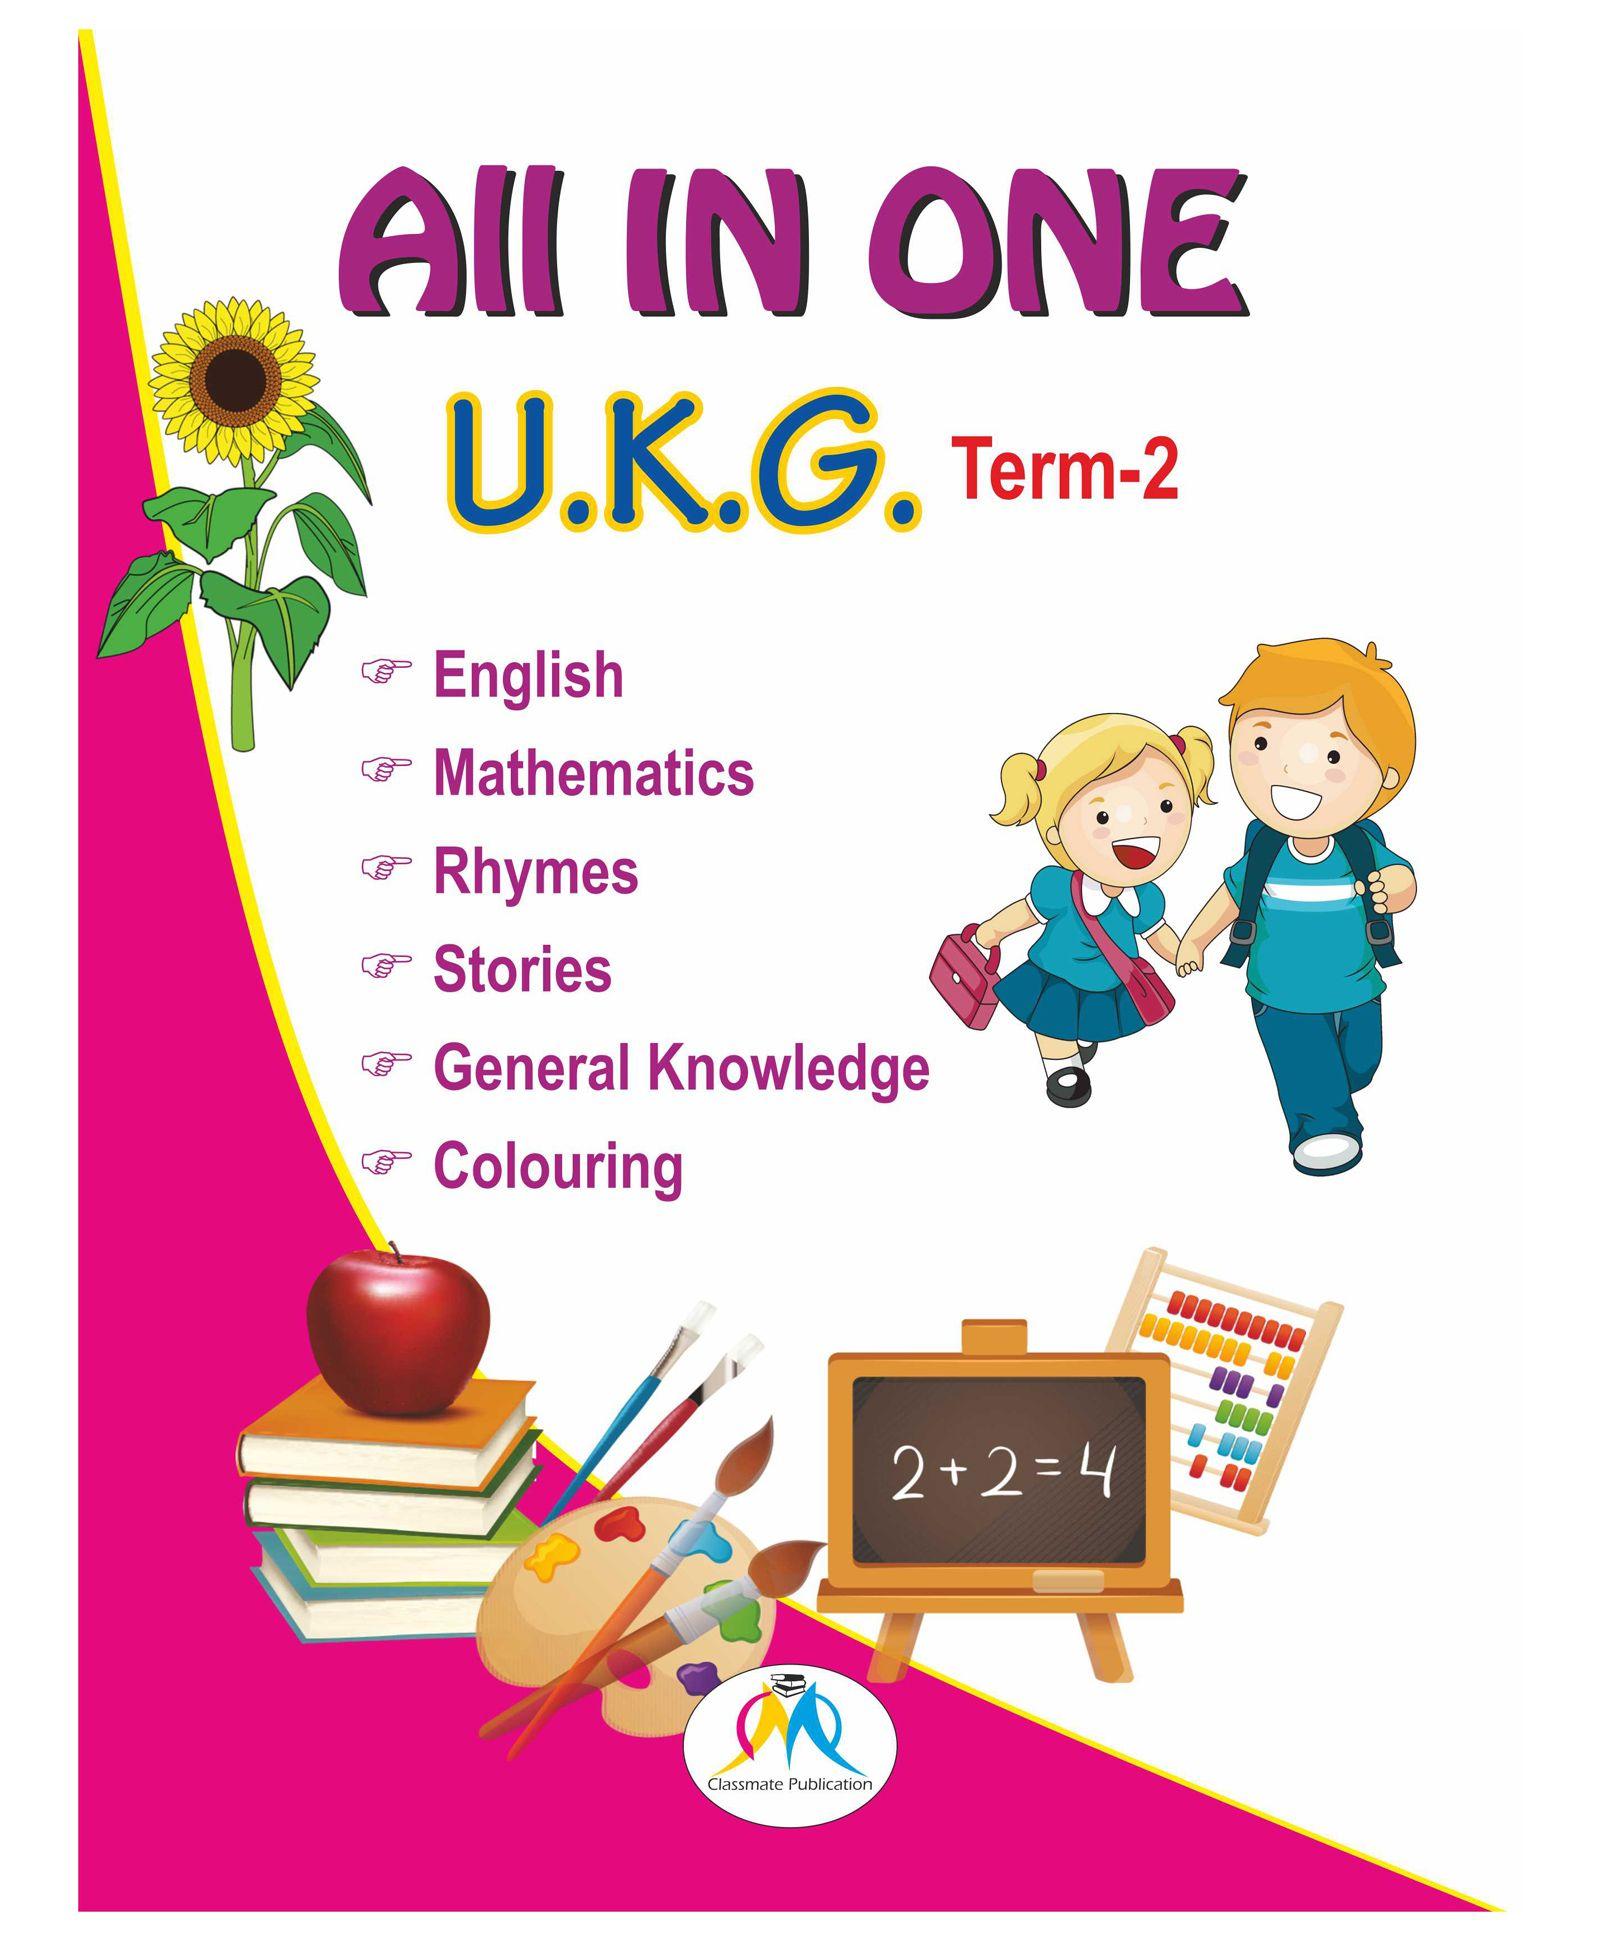 All In One Book For Ukg Term 2 English Online In India Buy